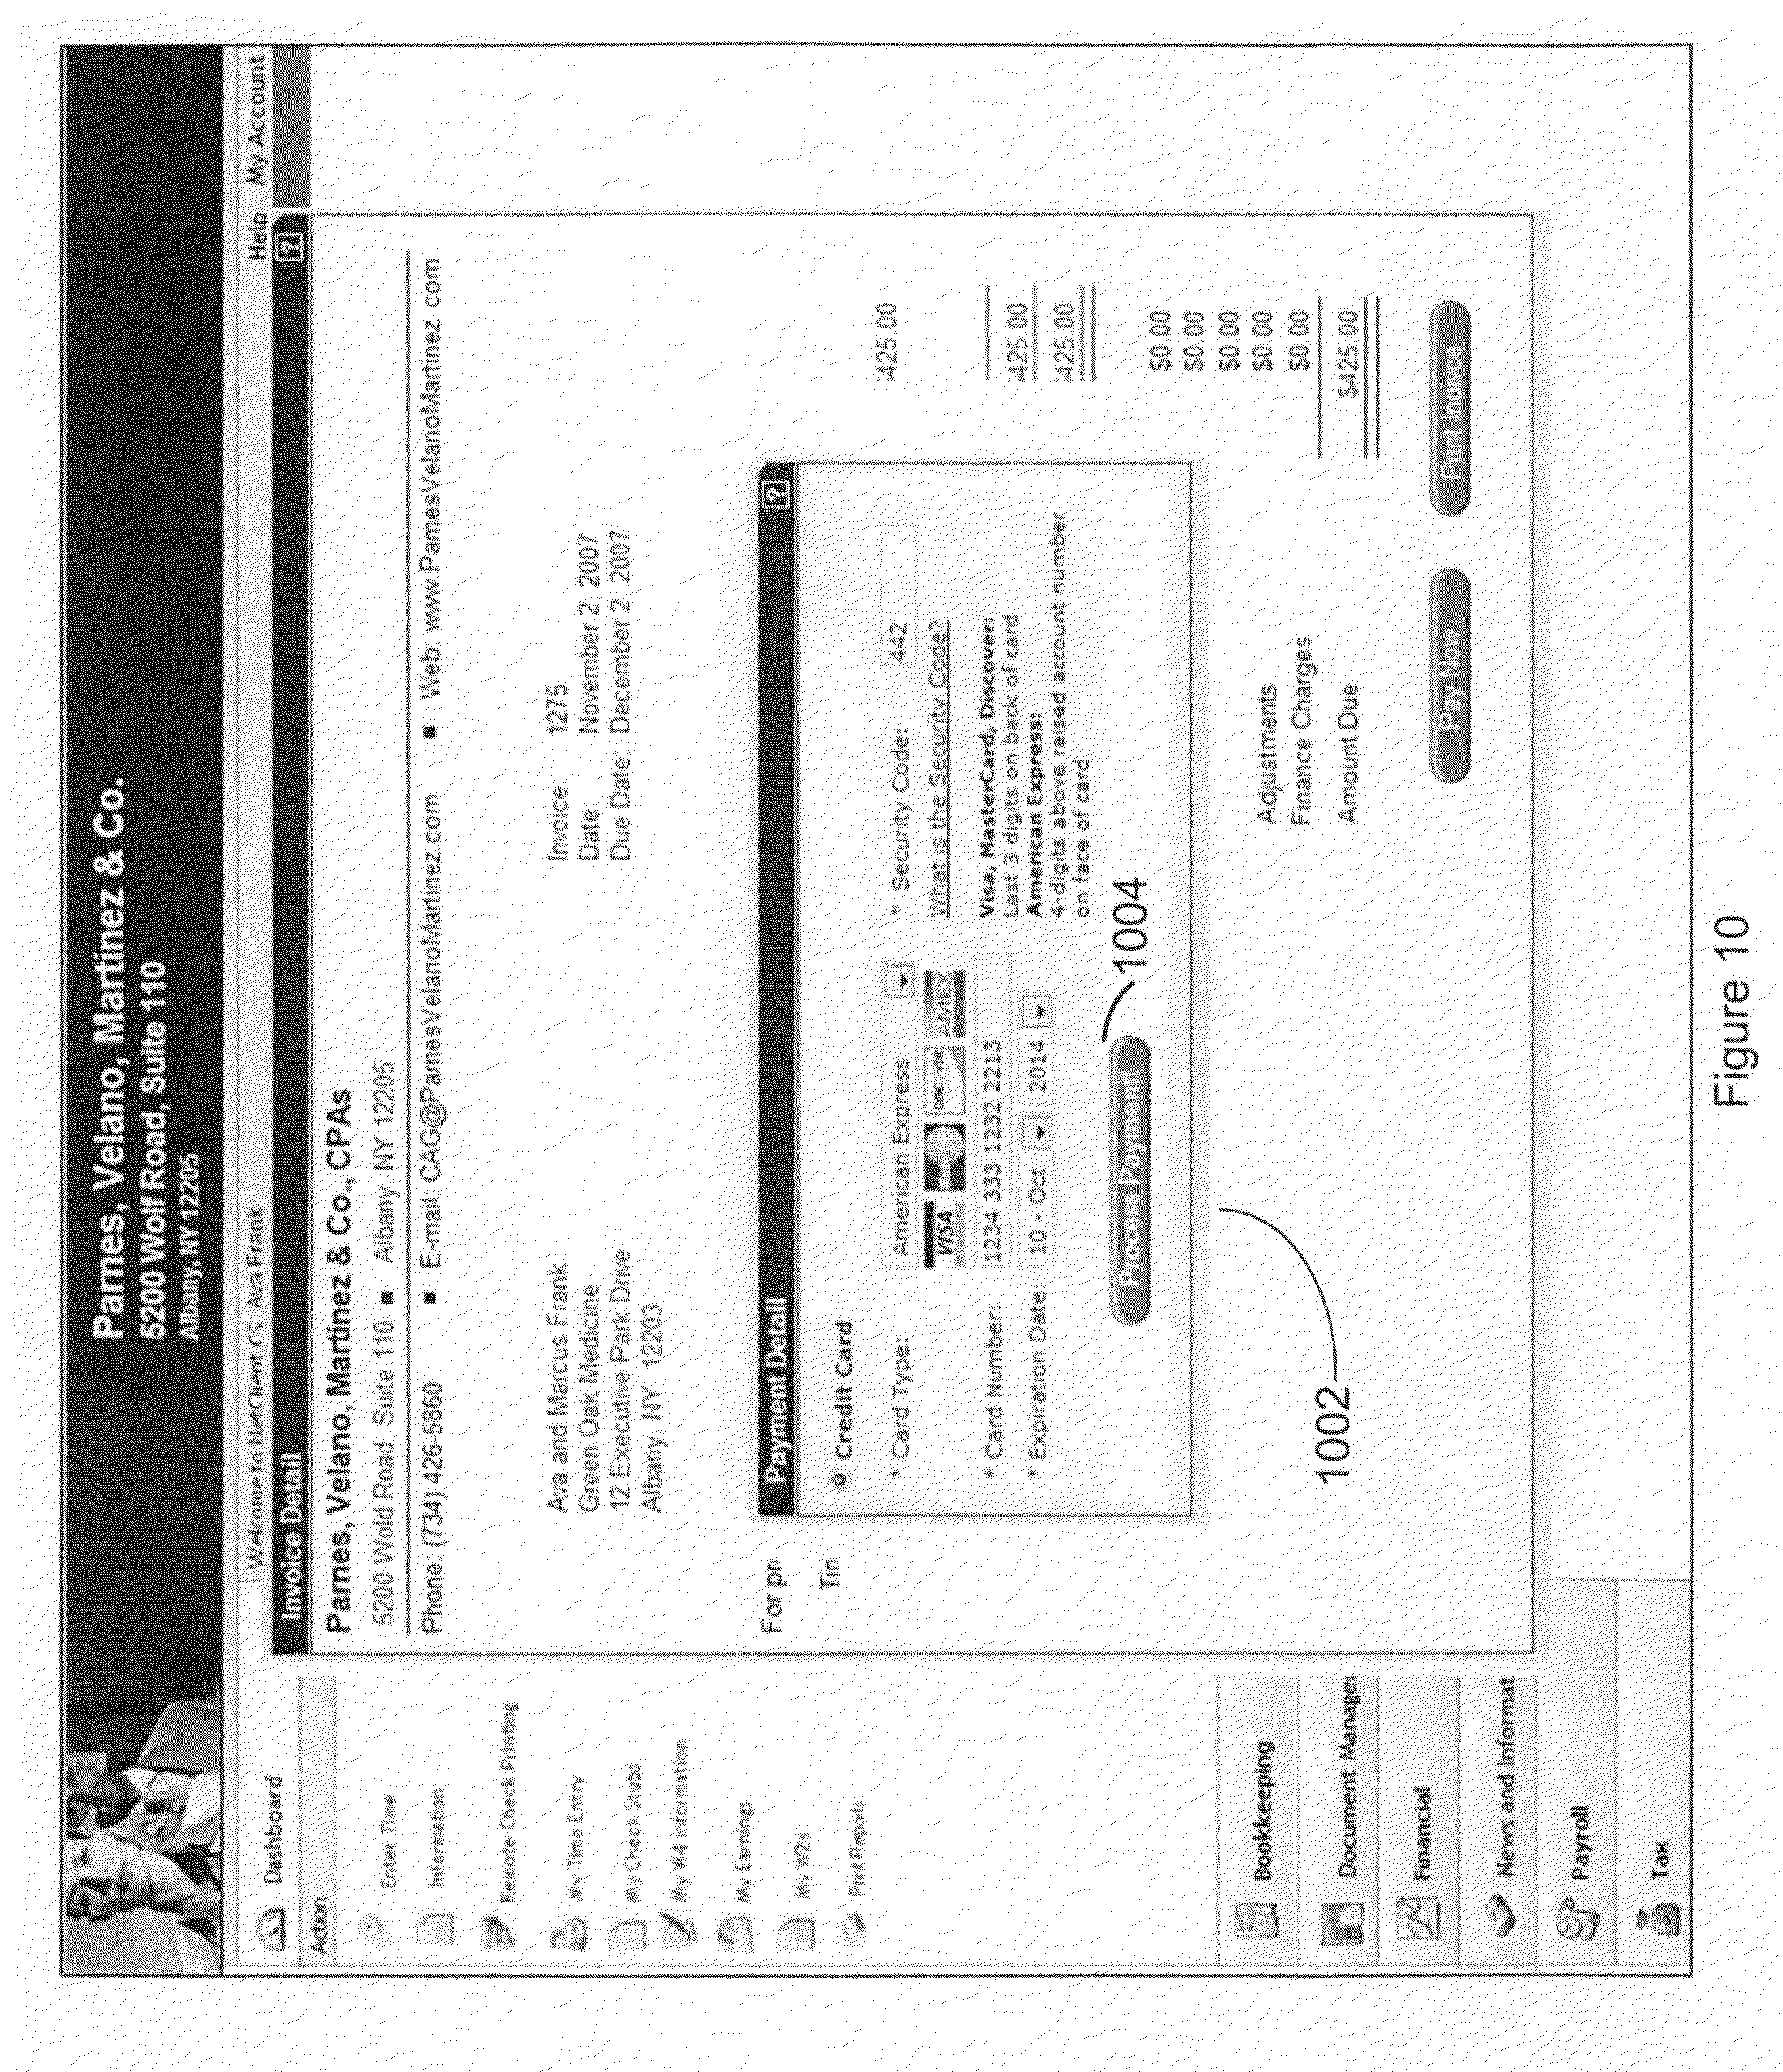 Invoice Php Script Pdf Patent Us  System And Method For Online Bill Payment  Walmart Receipt Lookup Online Word with Nissan Rogue Invoice Excel Patent Drawing New Mexico Gross Receipt Tax